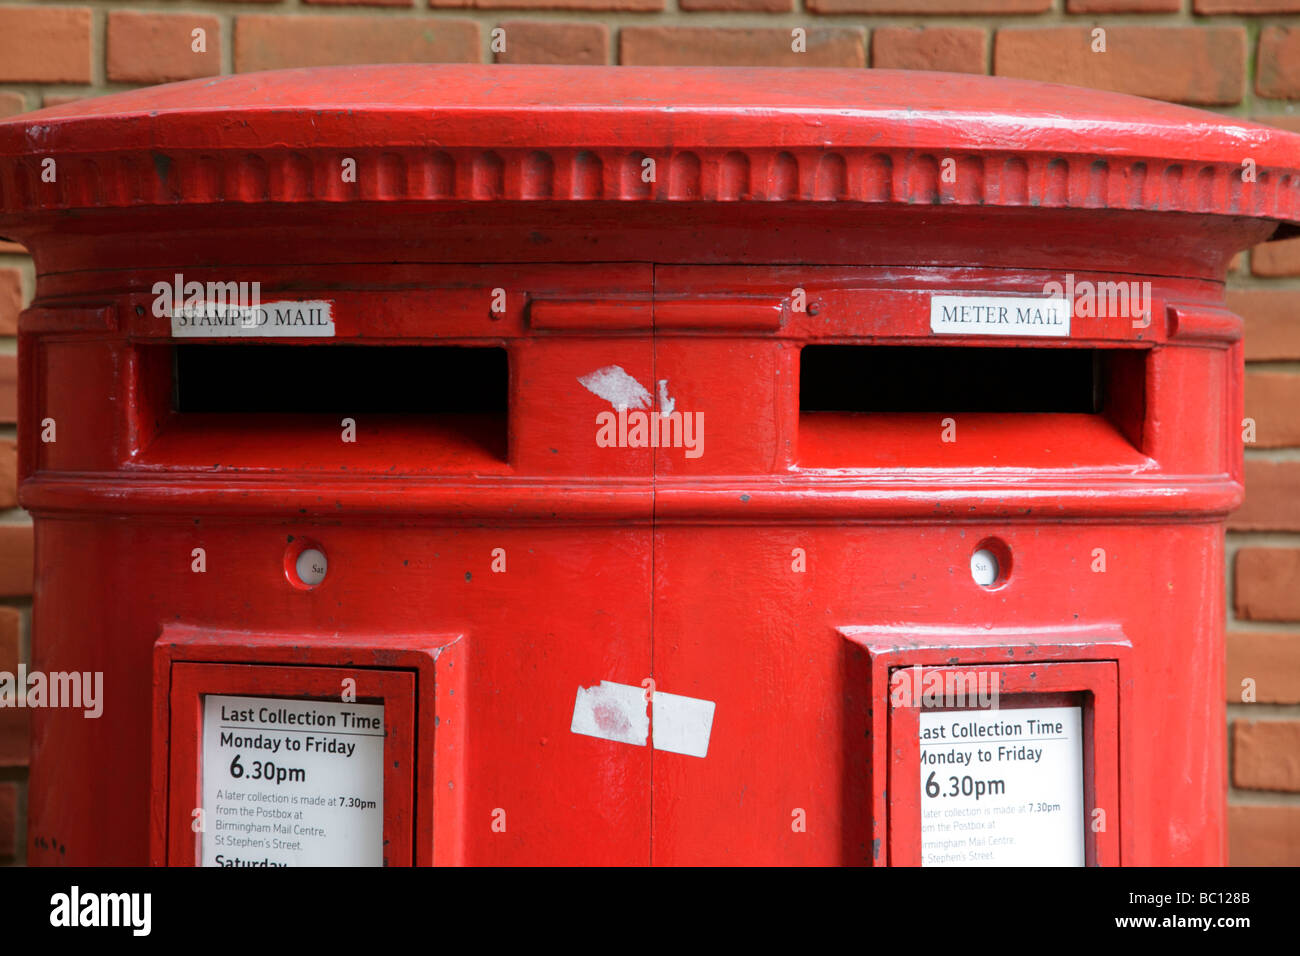 royal mail post box which has separate slots for stamped and metered mail oozells square birmingham uk - Stock Image